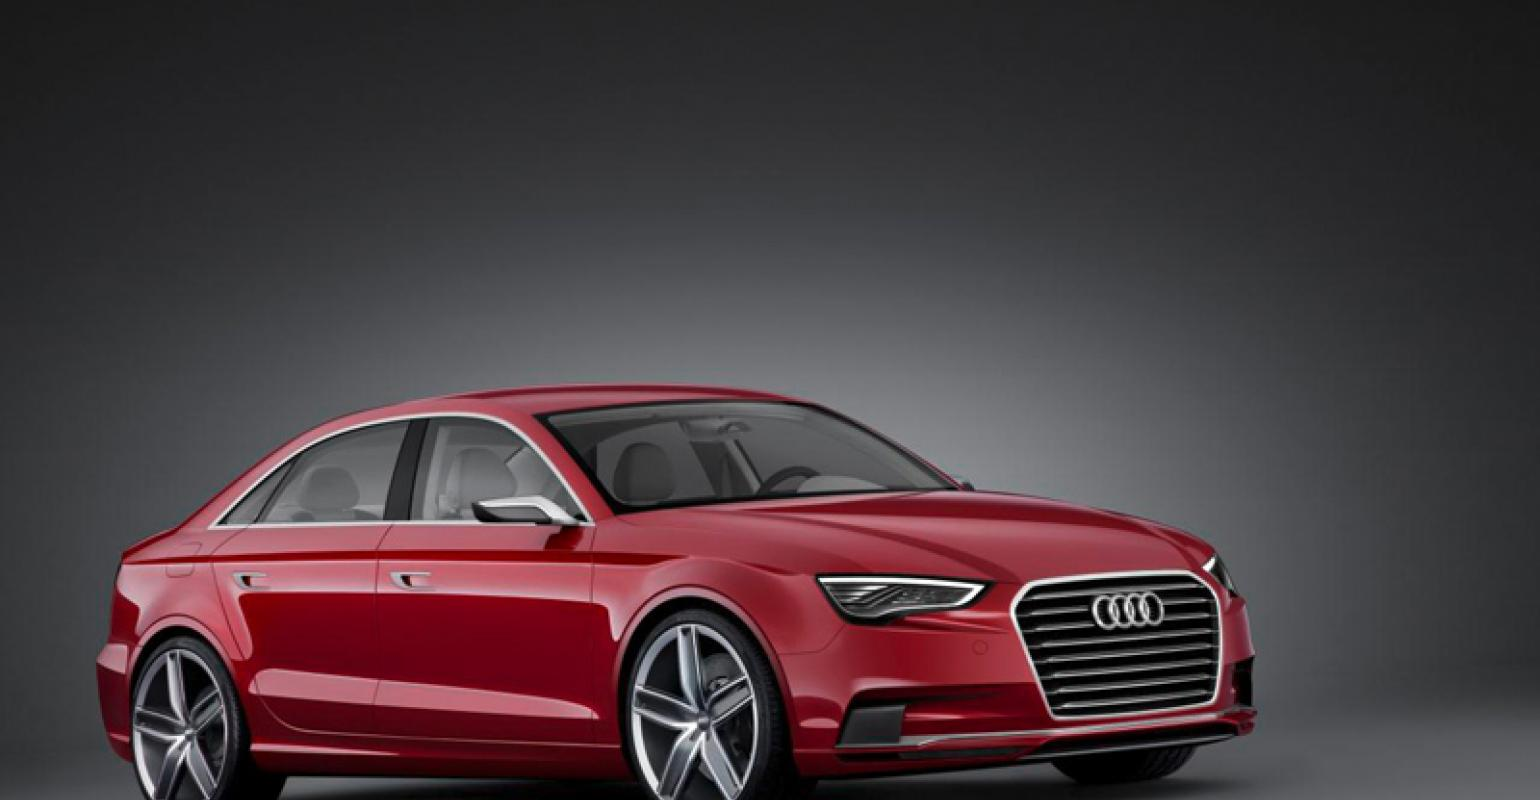 Audi Of America Chief Predicts Brand Sales Record For WardsAuto - Audi of america